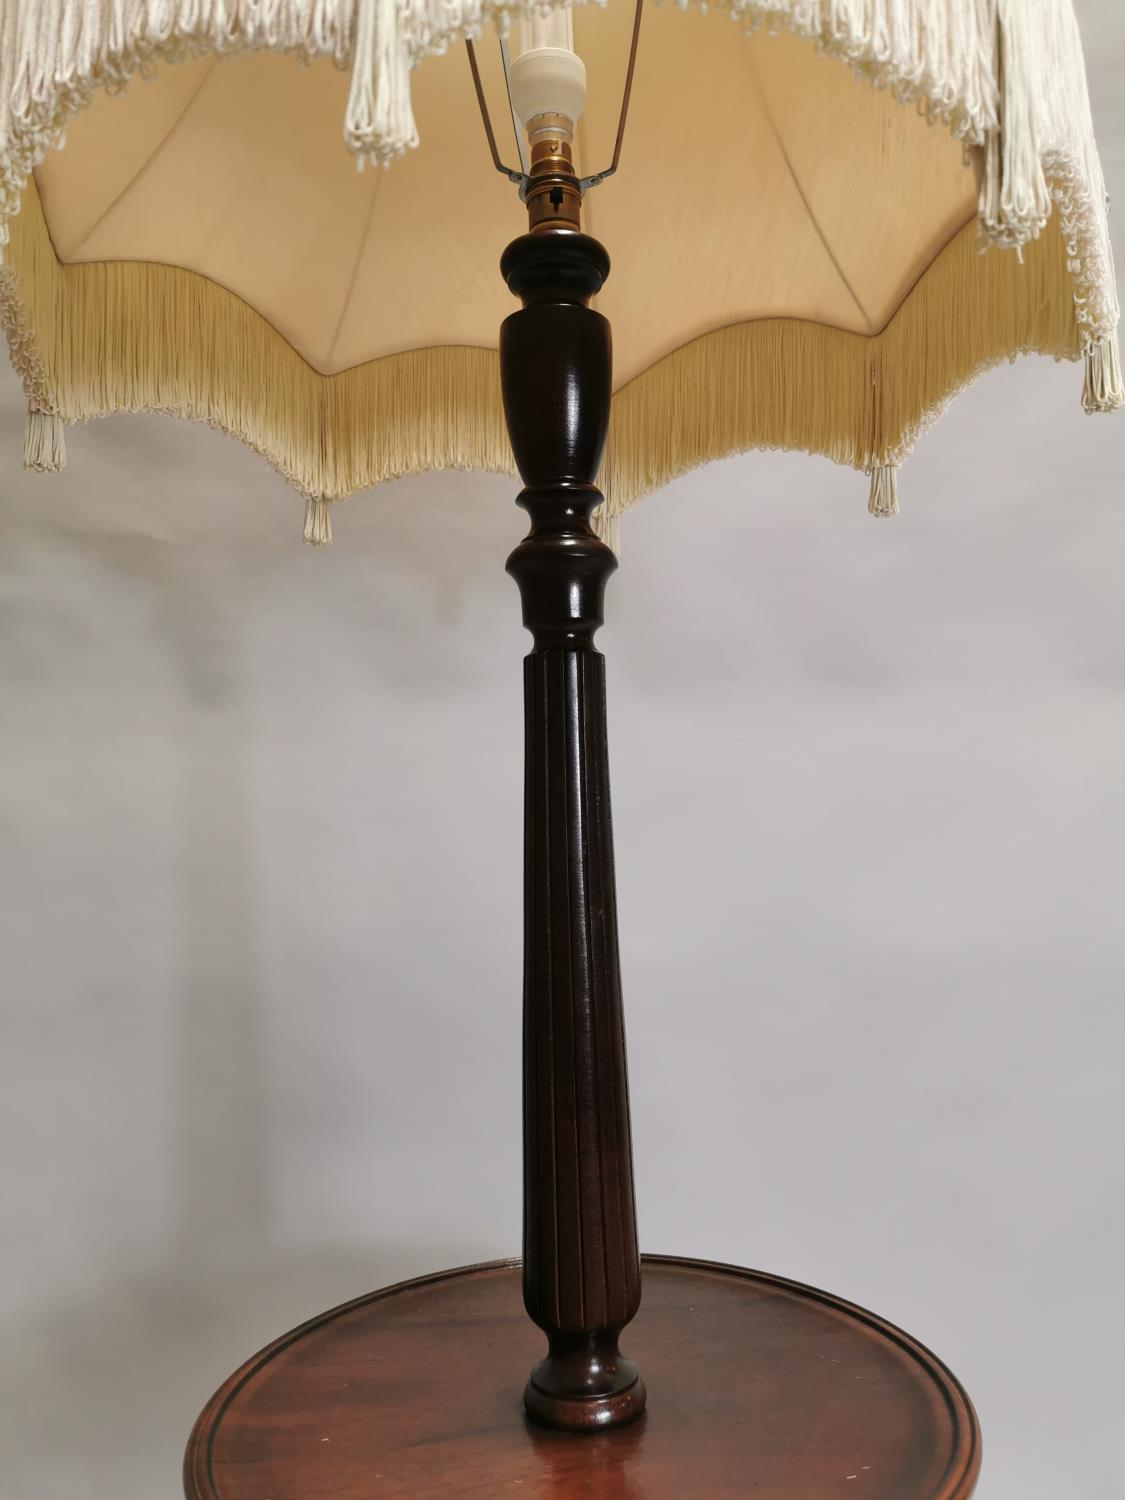 Mahogany standard lamp in the Edwardian style 162 cm H x 62 cm Dia - Image 3 of 3